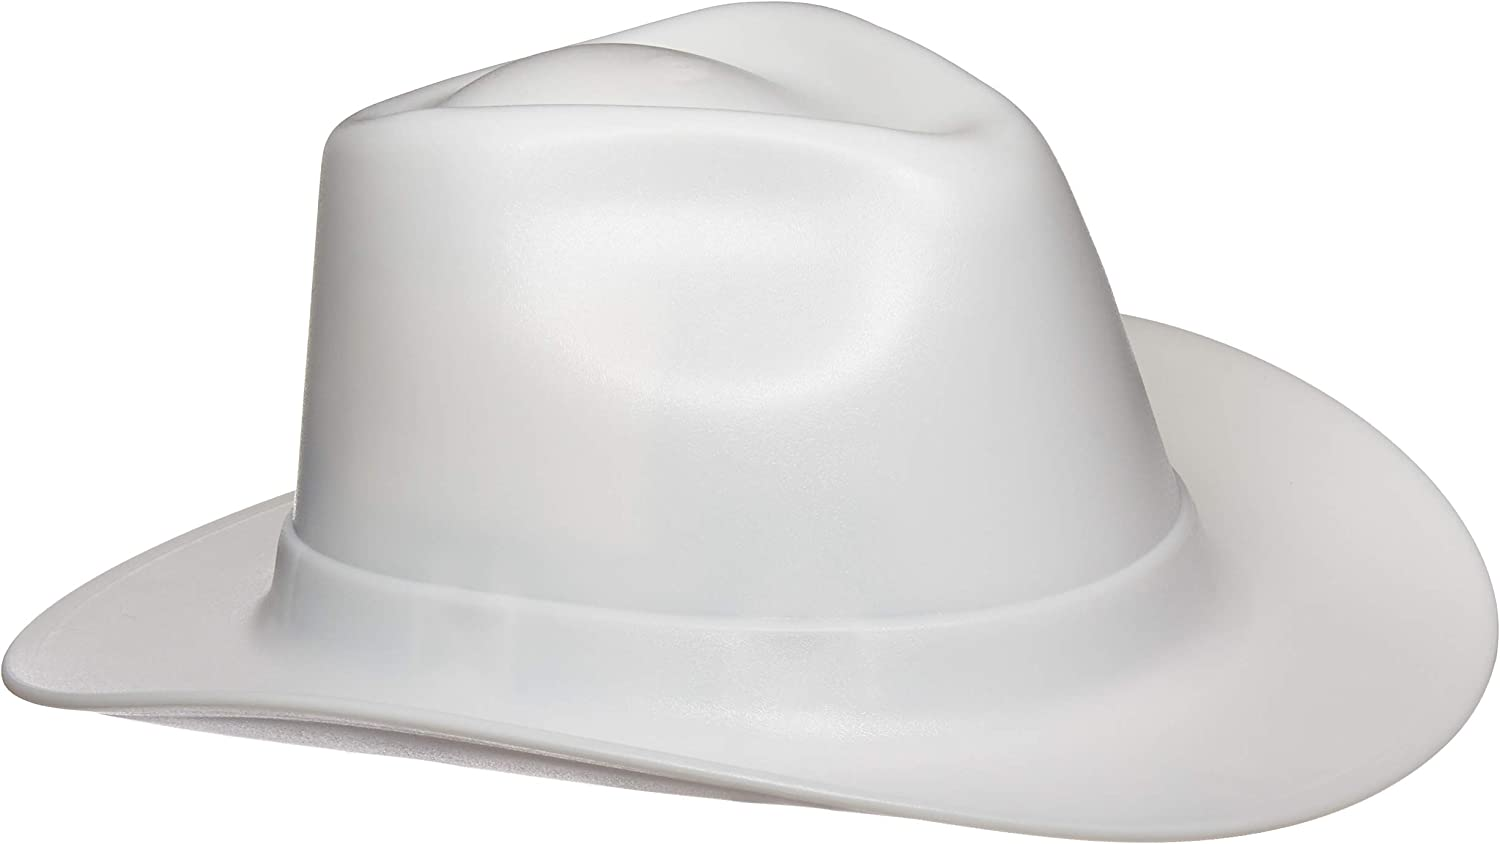 Occunomix VCB200-06 Vulcan Cowboy Style Hard Hat with Ratchet Suspension Black